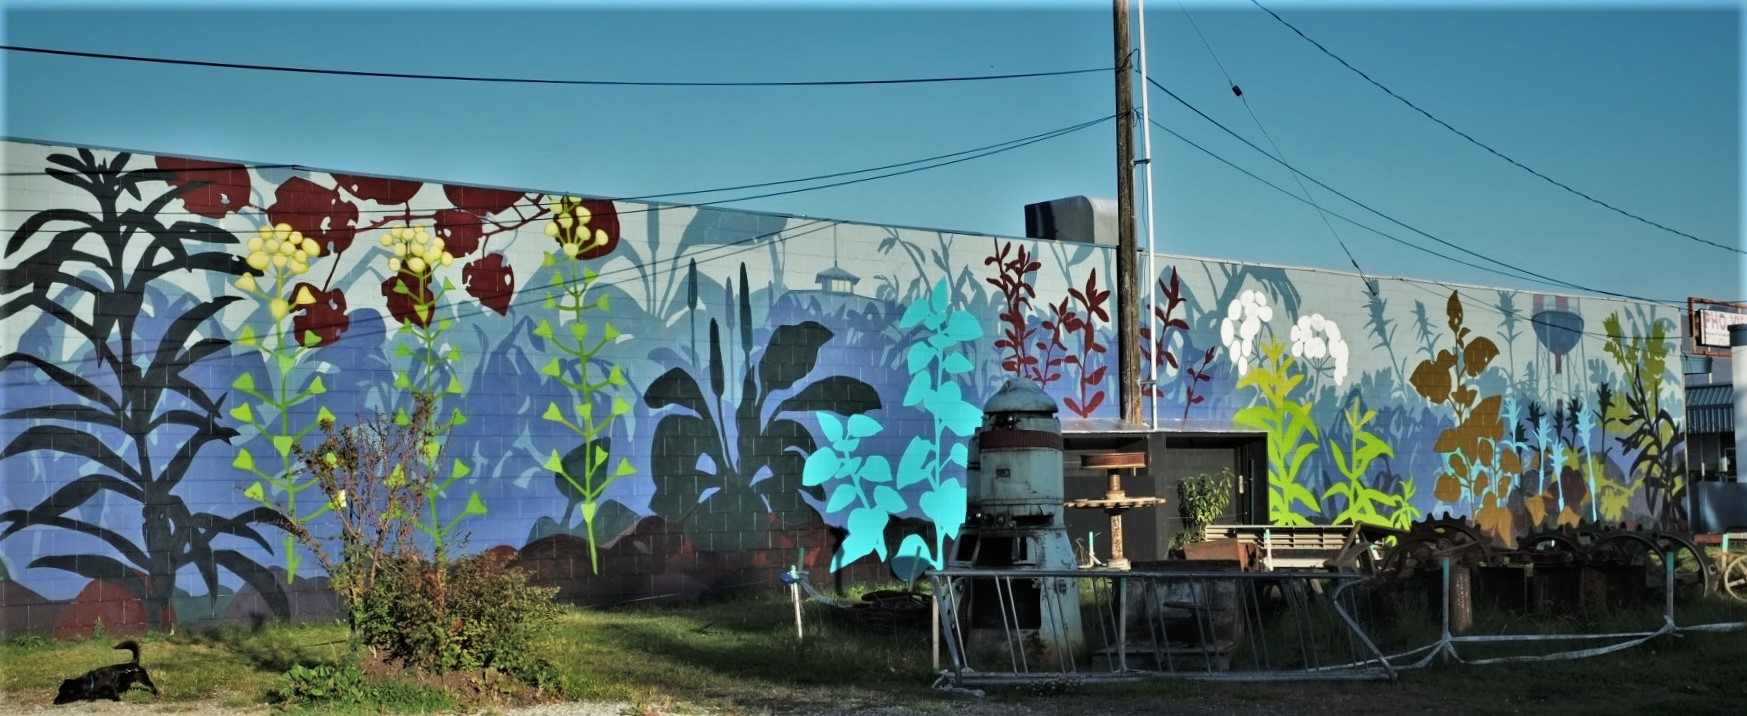 """Common Ground,  14' x 100"""" exterior mural. -Linda Infante Lyons- 9/2018                                                                      CLICK TO ENLARGE IMAGE"""